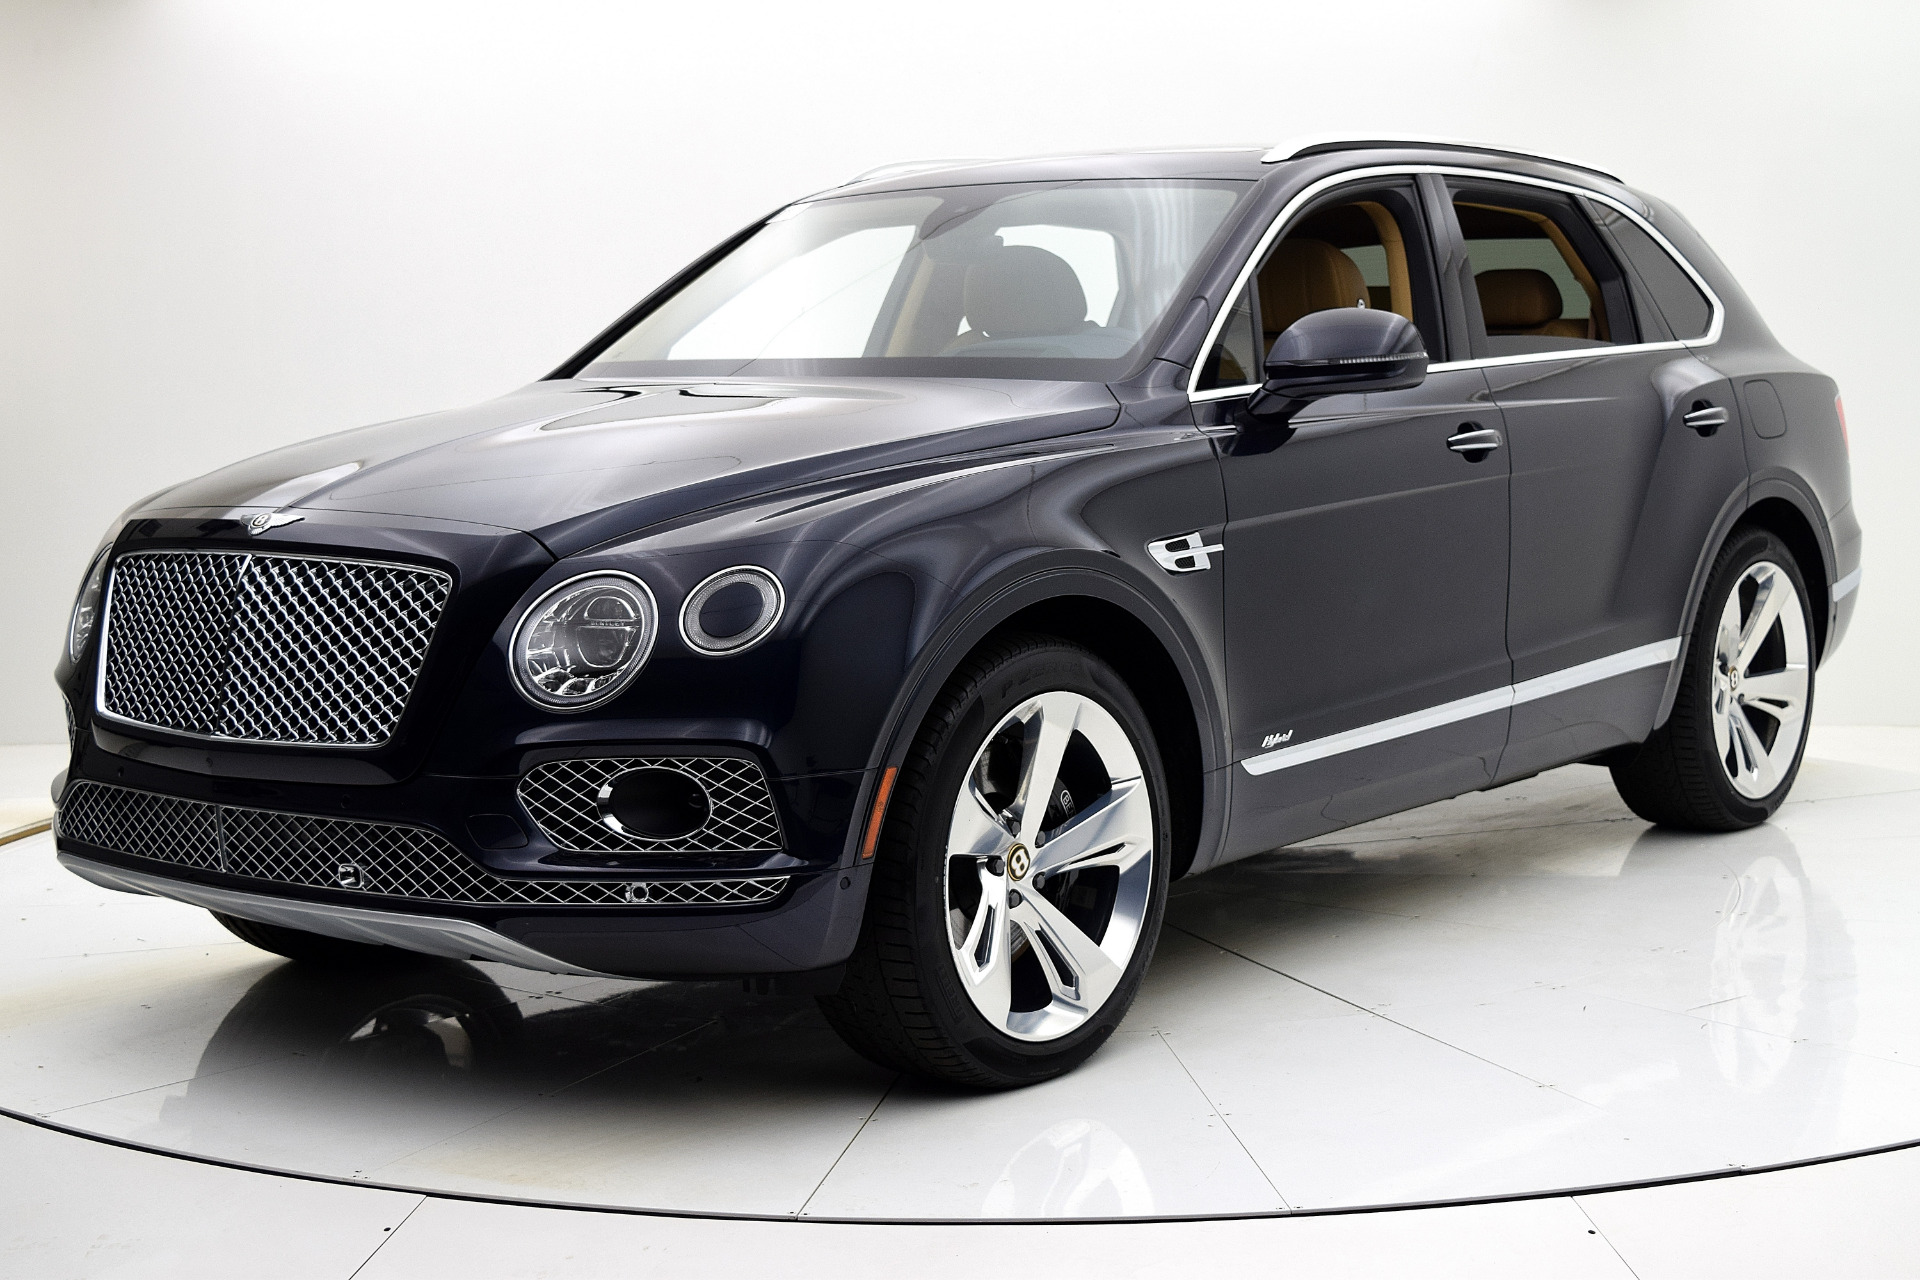 New 2020 Bentley Bentayga Hybrid For Sale 205 365 Bentley Palmyra N J Stock 20be152